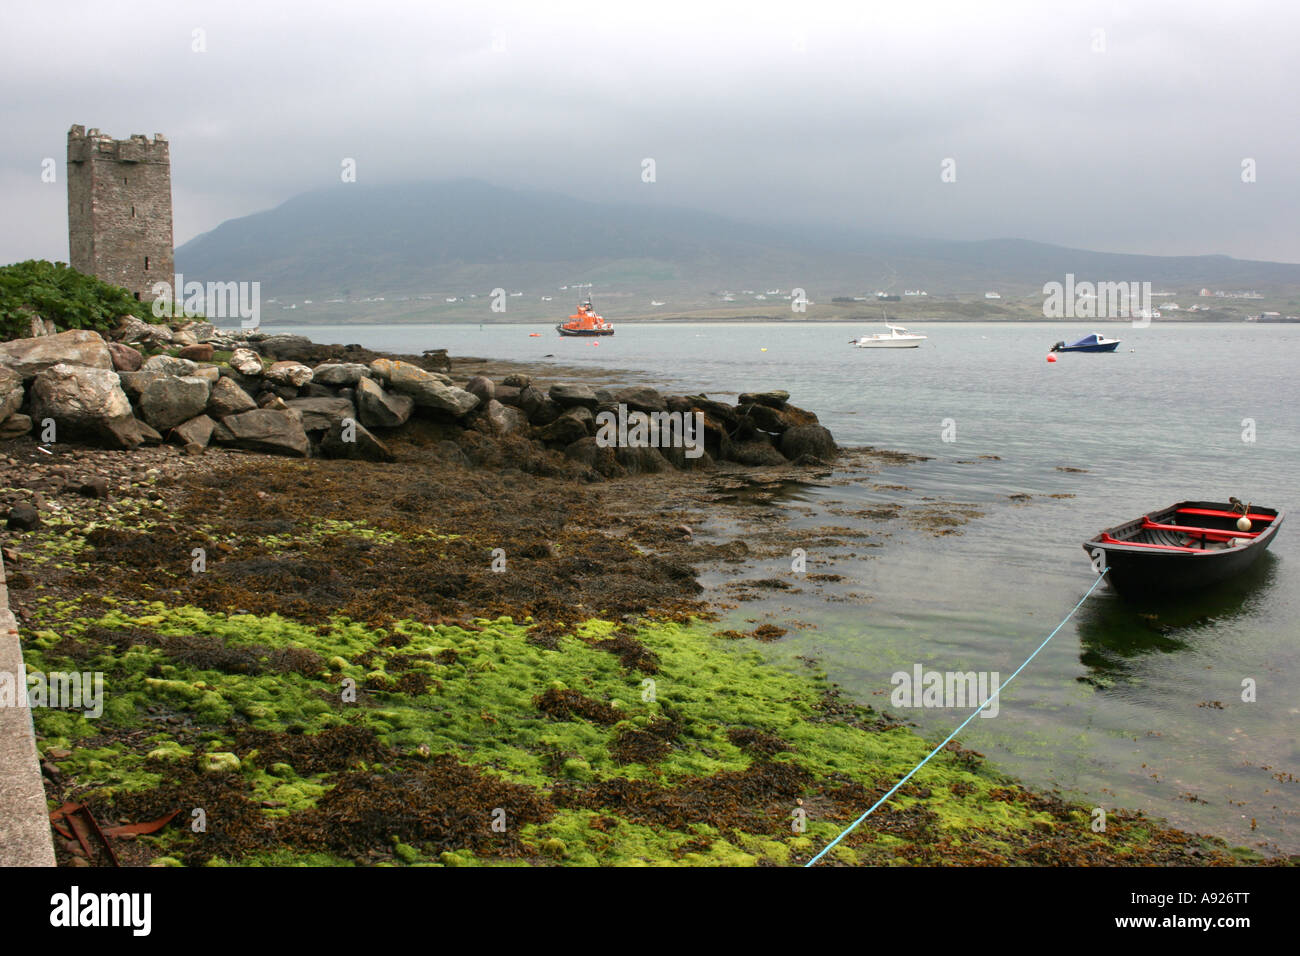 the harbour at Granuaile's Tower, Kildownet, Achill Island, County Mayo, Republic of Ireland - Stock Image